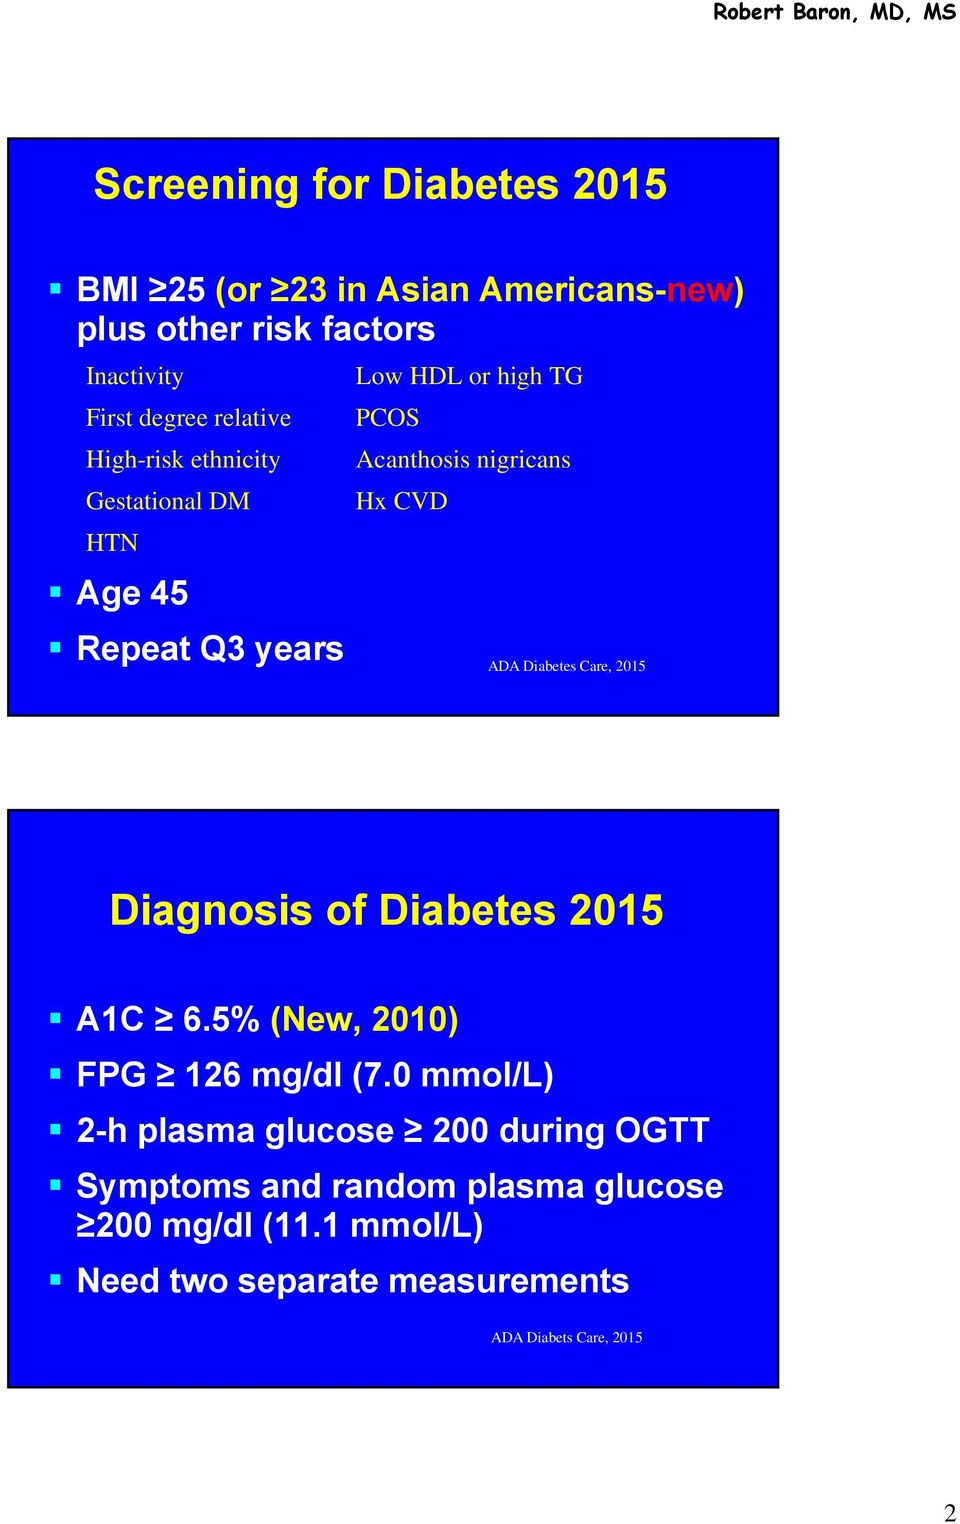 years ADA Diabetes Care, 2015 Diagnosis of Diabetes 2015 A1C 6.5% (New, 2010) FPG 126 mg/dl (7.